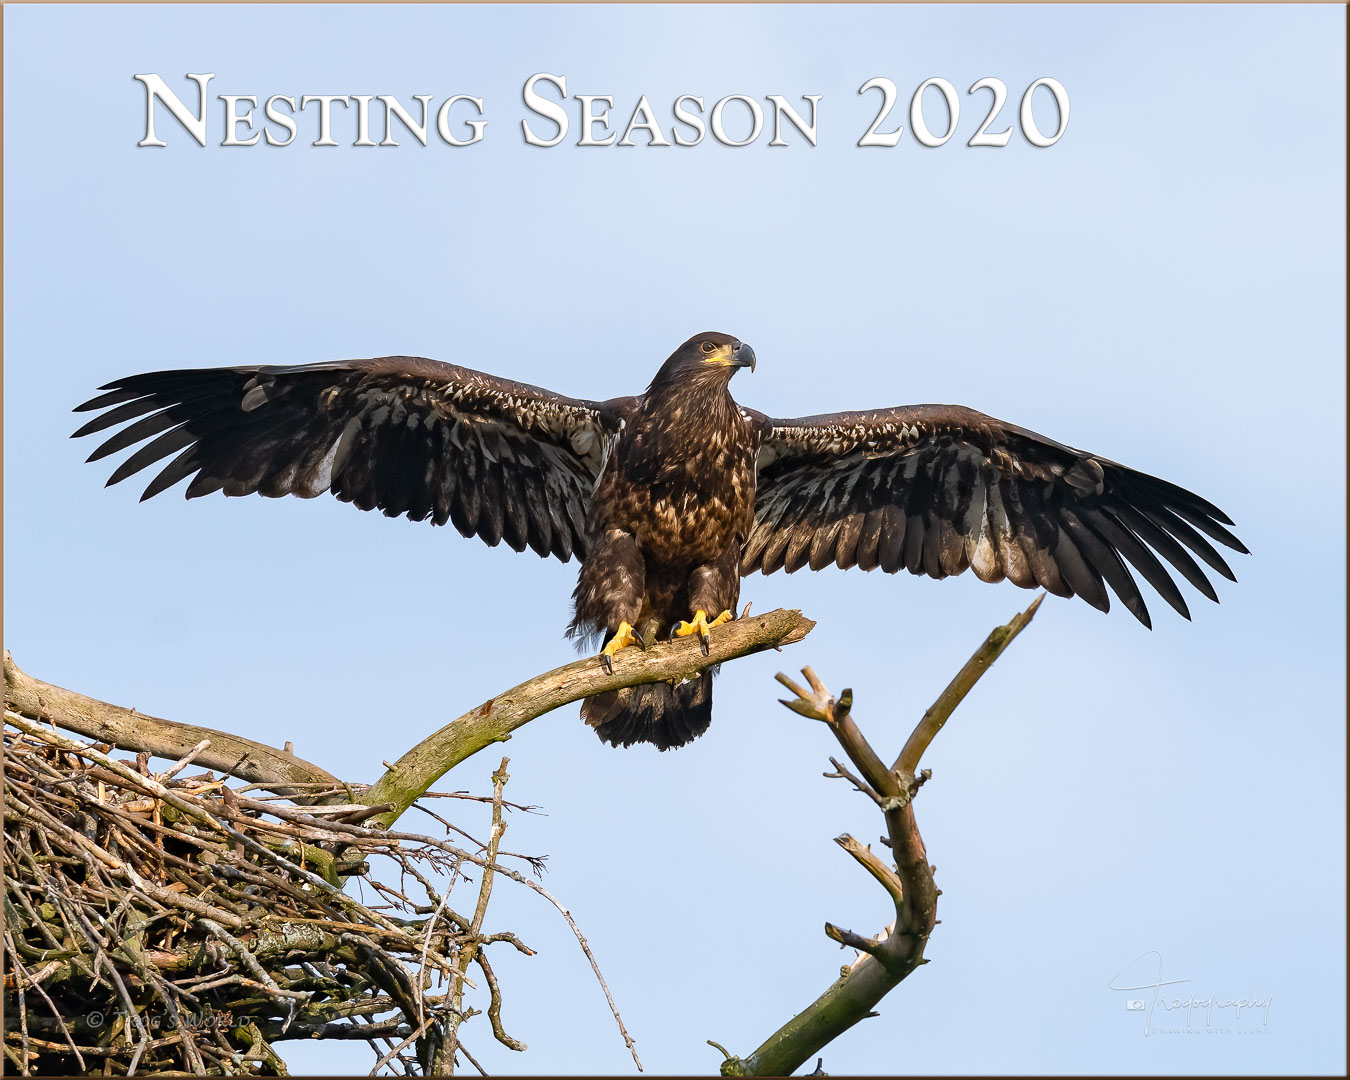 Eagle delivering fish to the nest for the eaglets